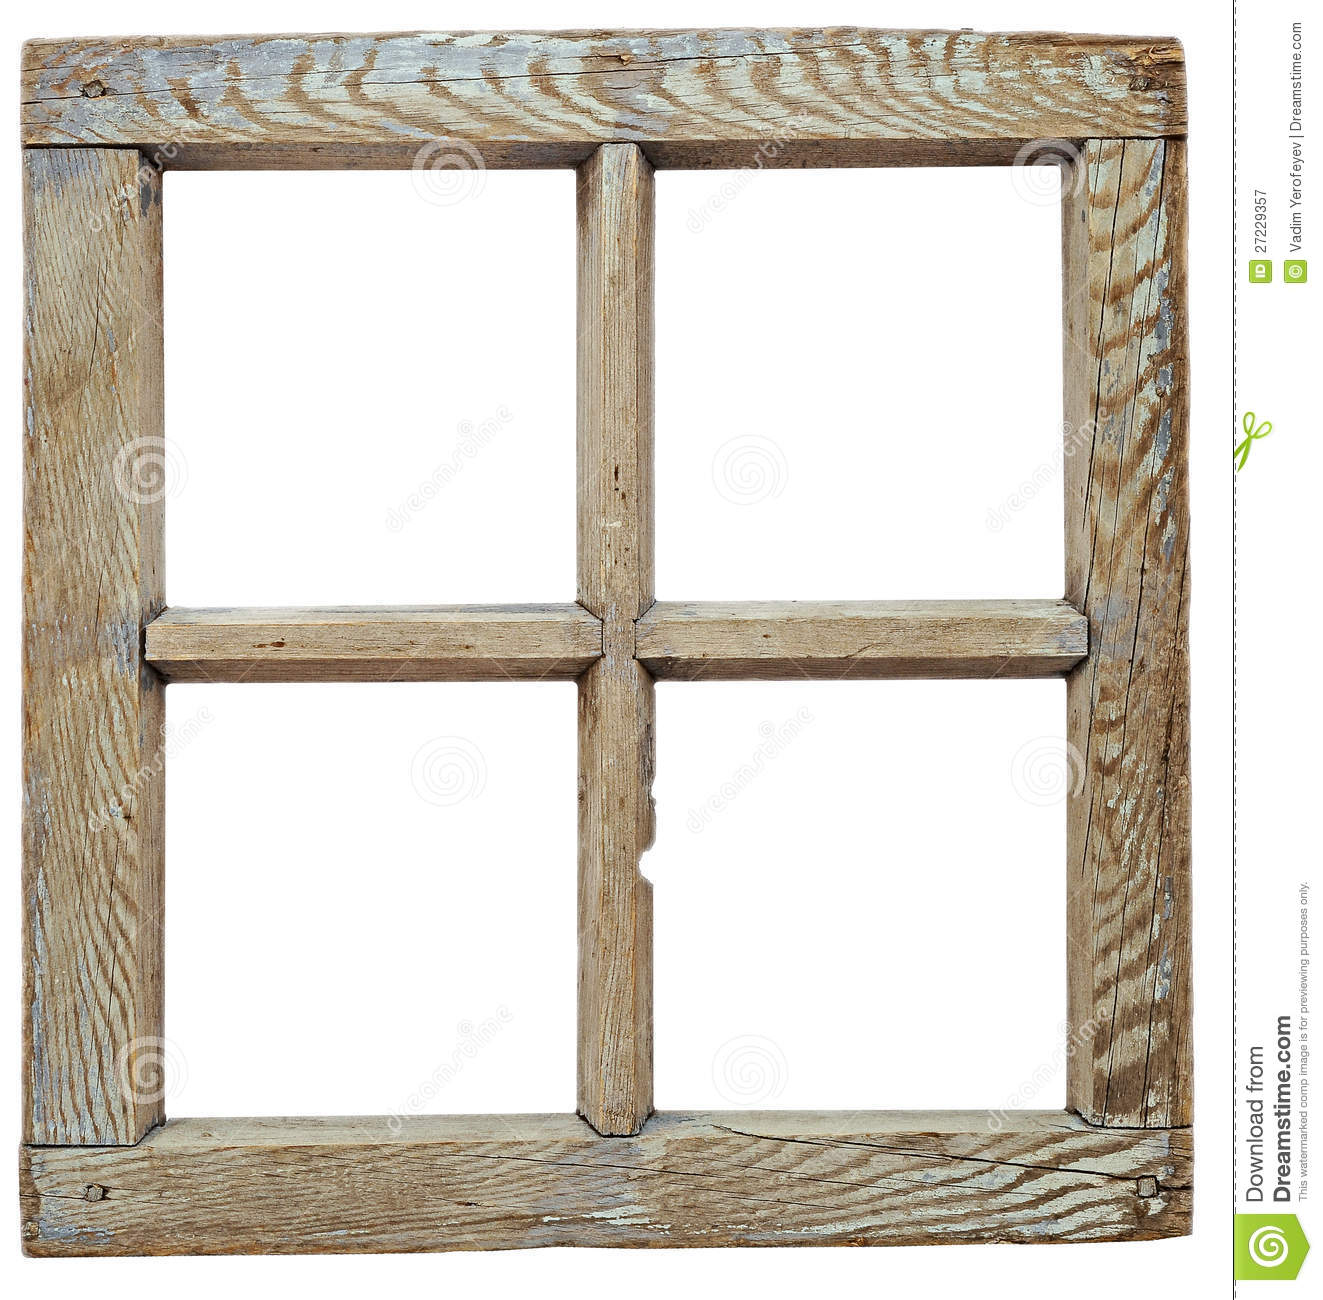 very old grunged wooden window stock image